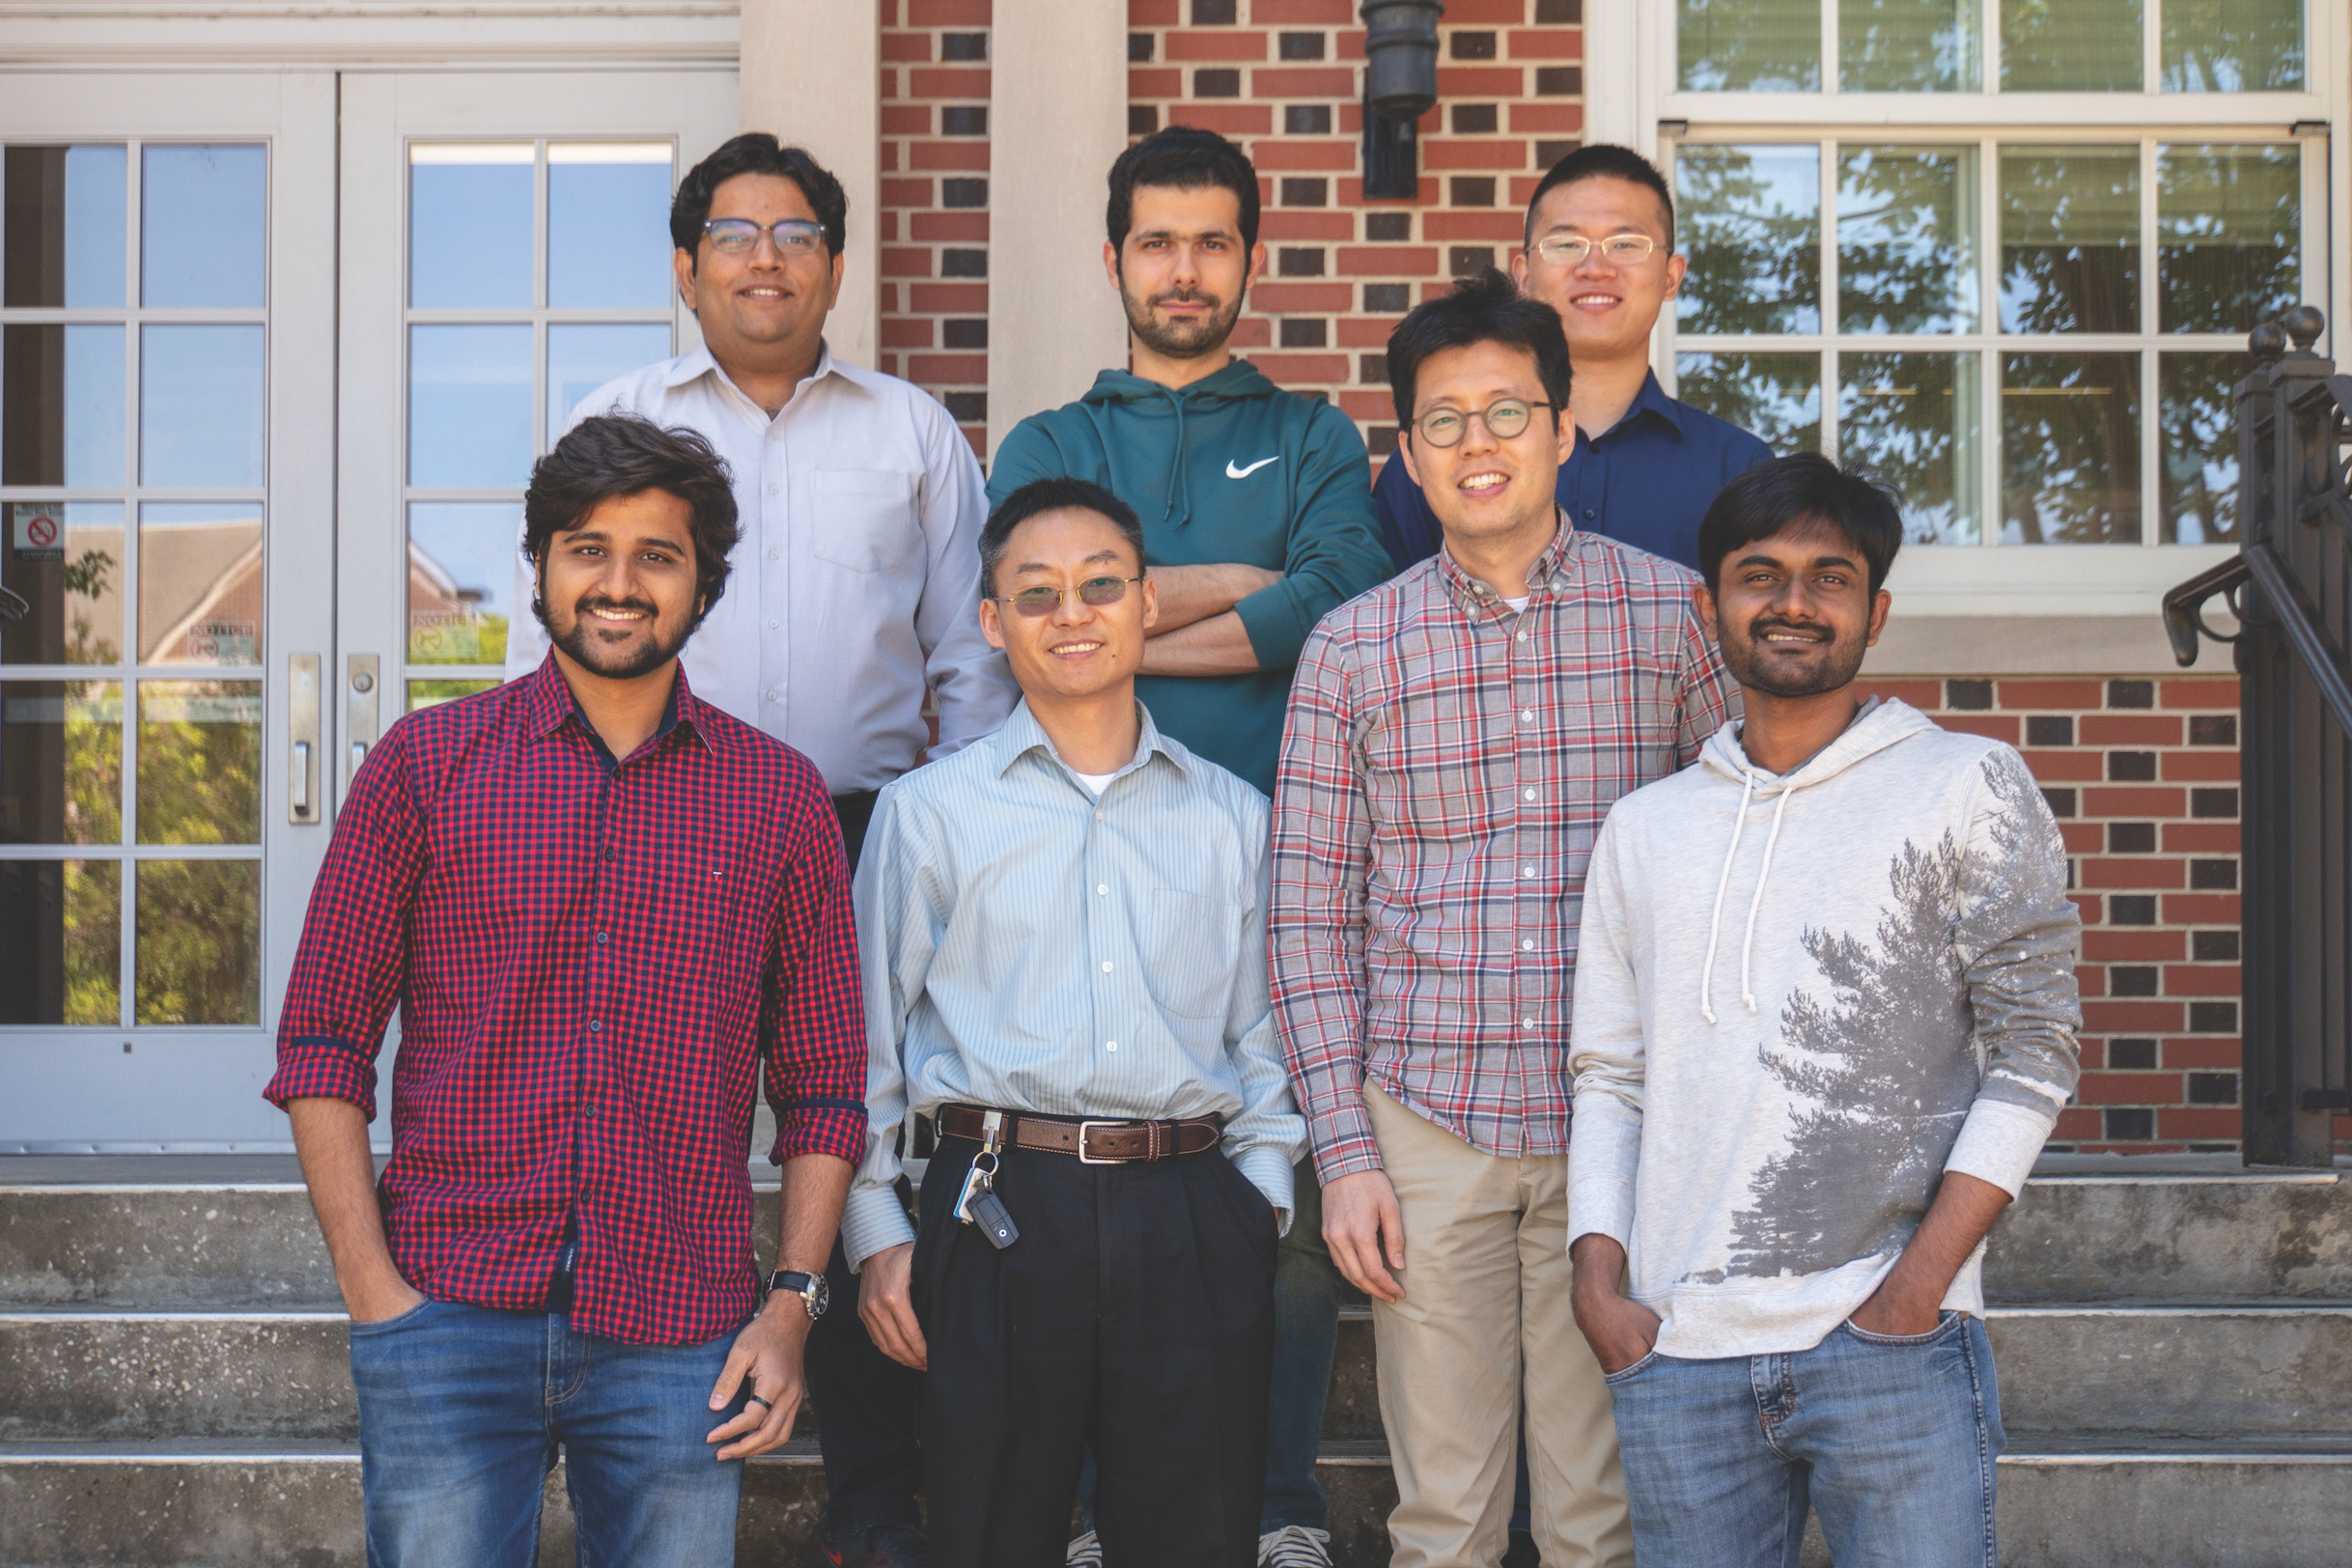 Principal investigator Peter He's team consists of graduate students (front, L-R) Kerul Suthar, Peter He, Jangwon Lee, Devarshi Shah, (back) Arsslan Tahir Bhatti, Farshad Amiri and Feifan Cheng.